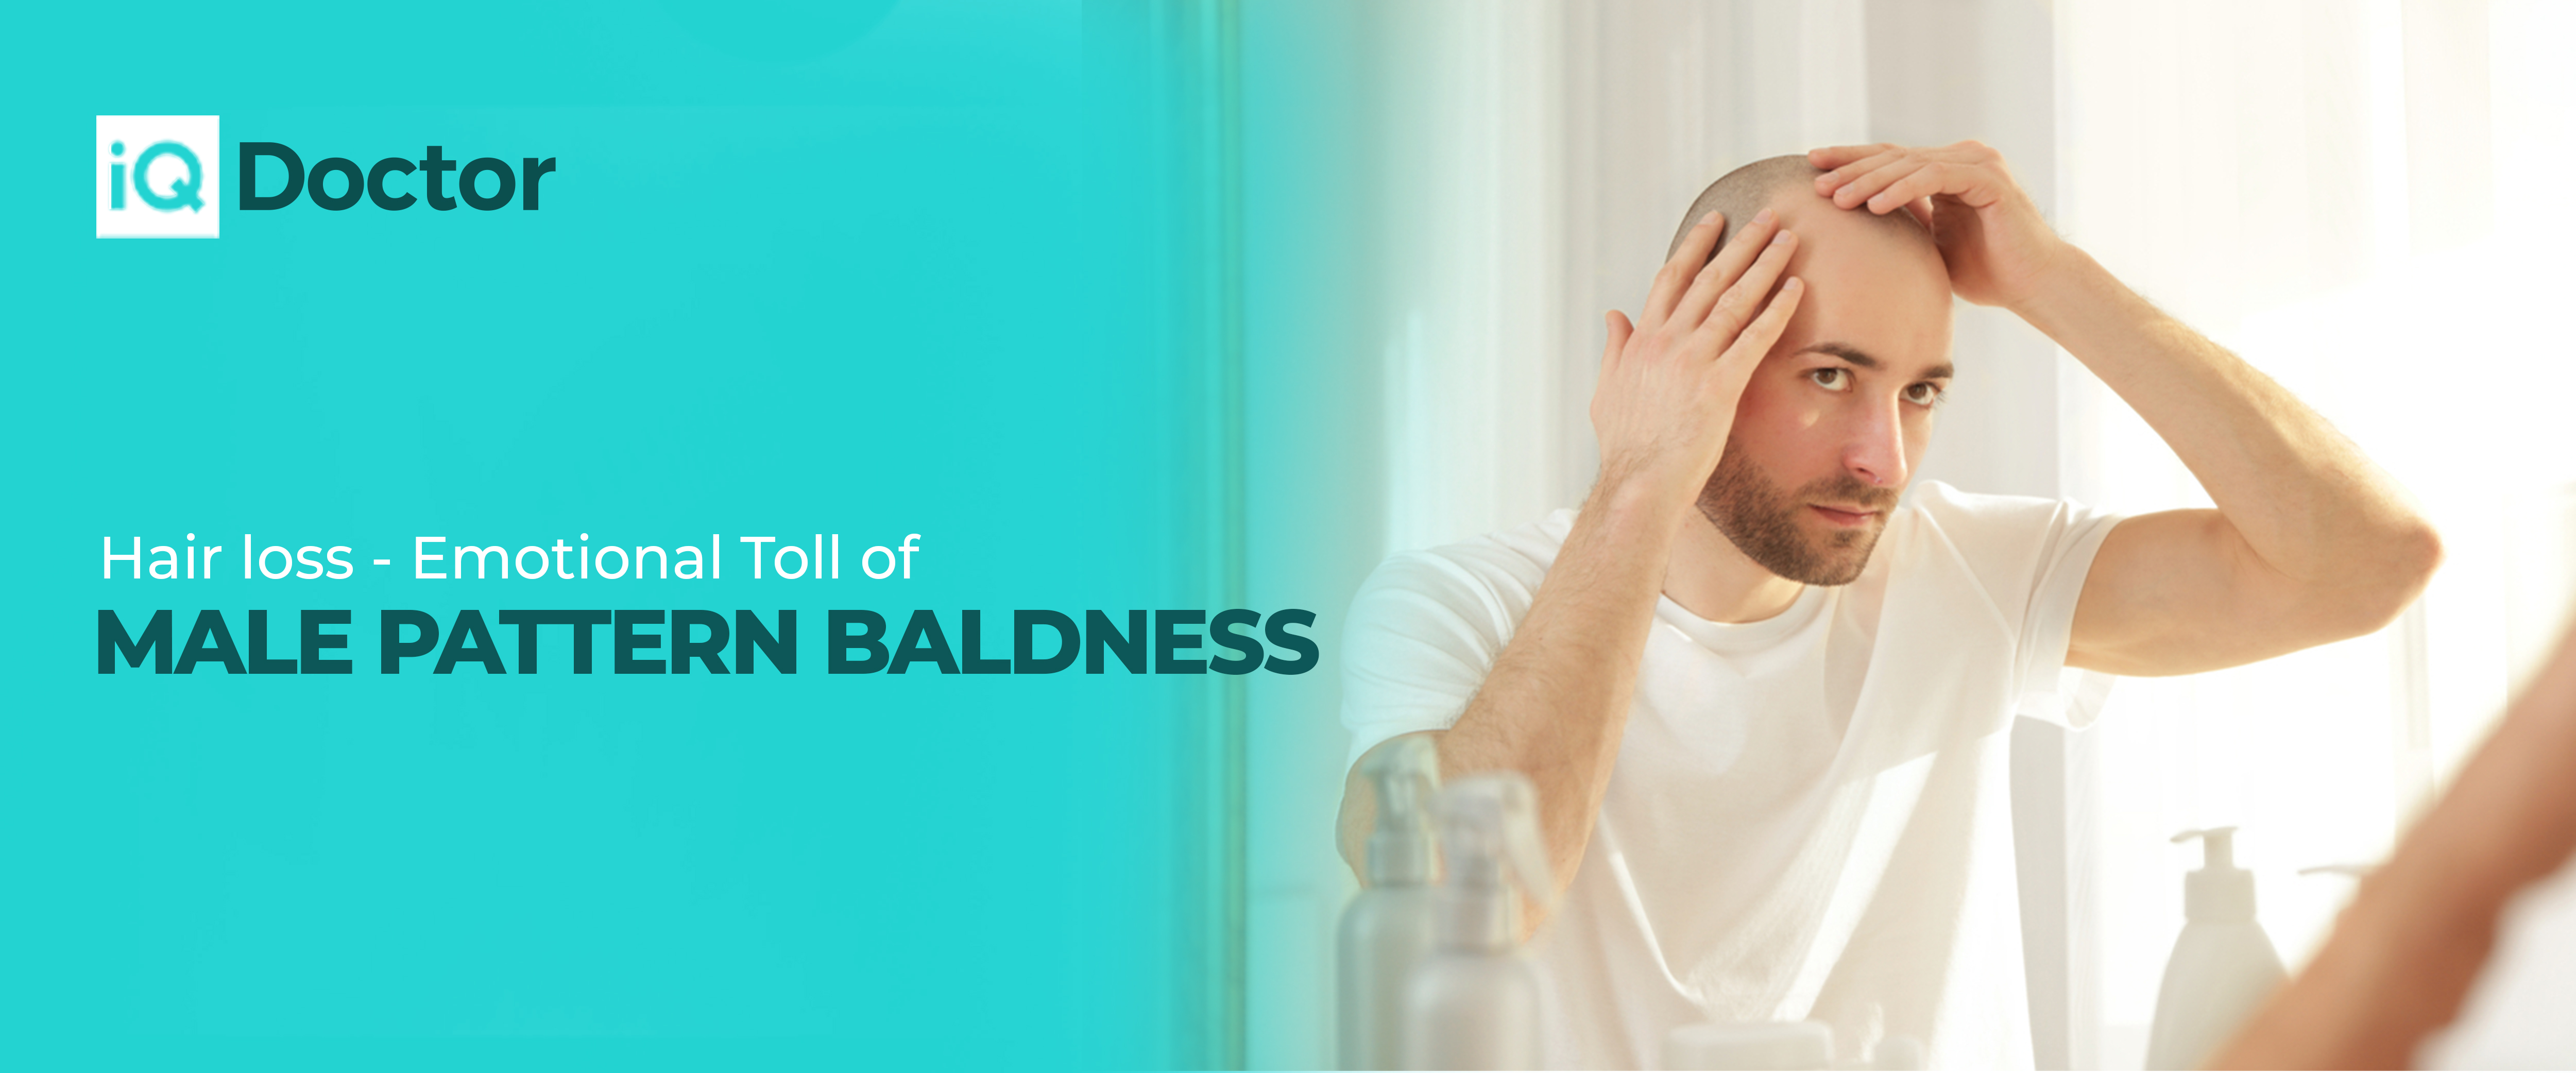 Hair loss - Emotional Toll of Male Pattern Baldness